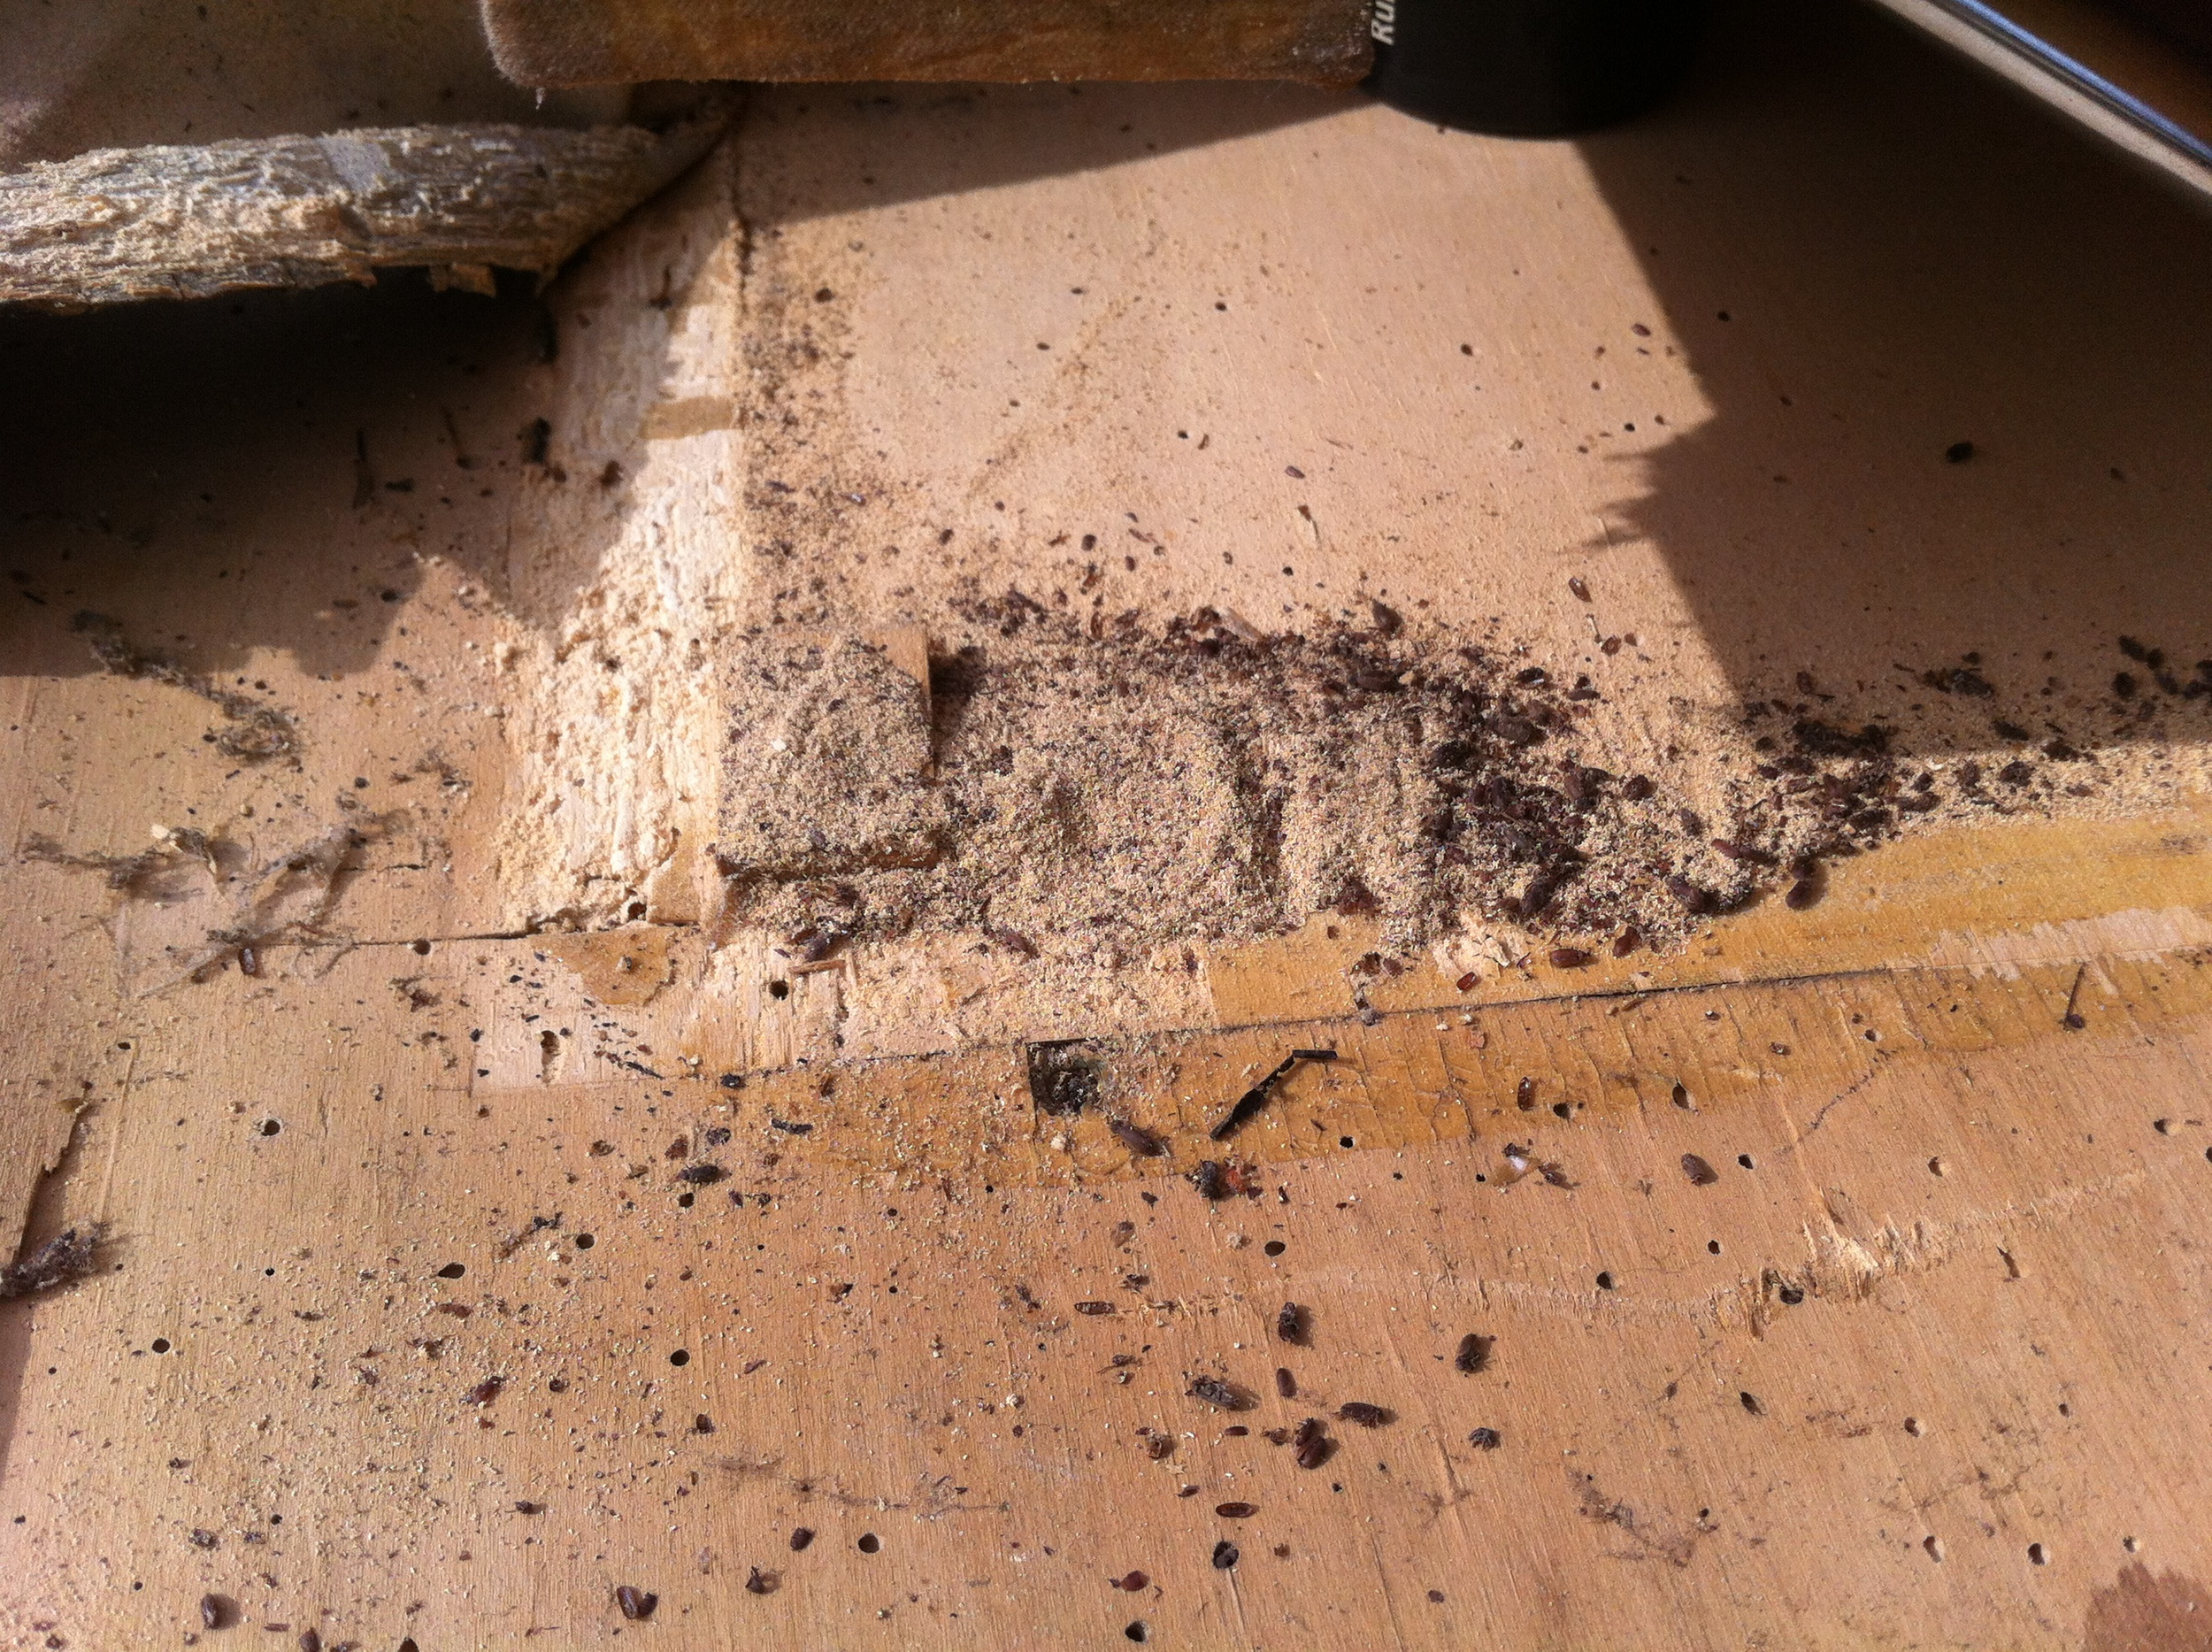 Zoom in and see all the dead woodworm beetles in the bellows!